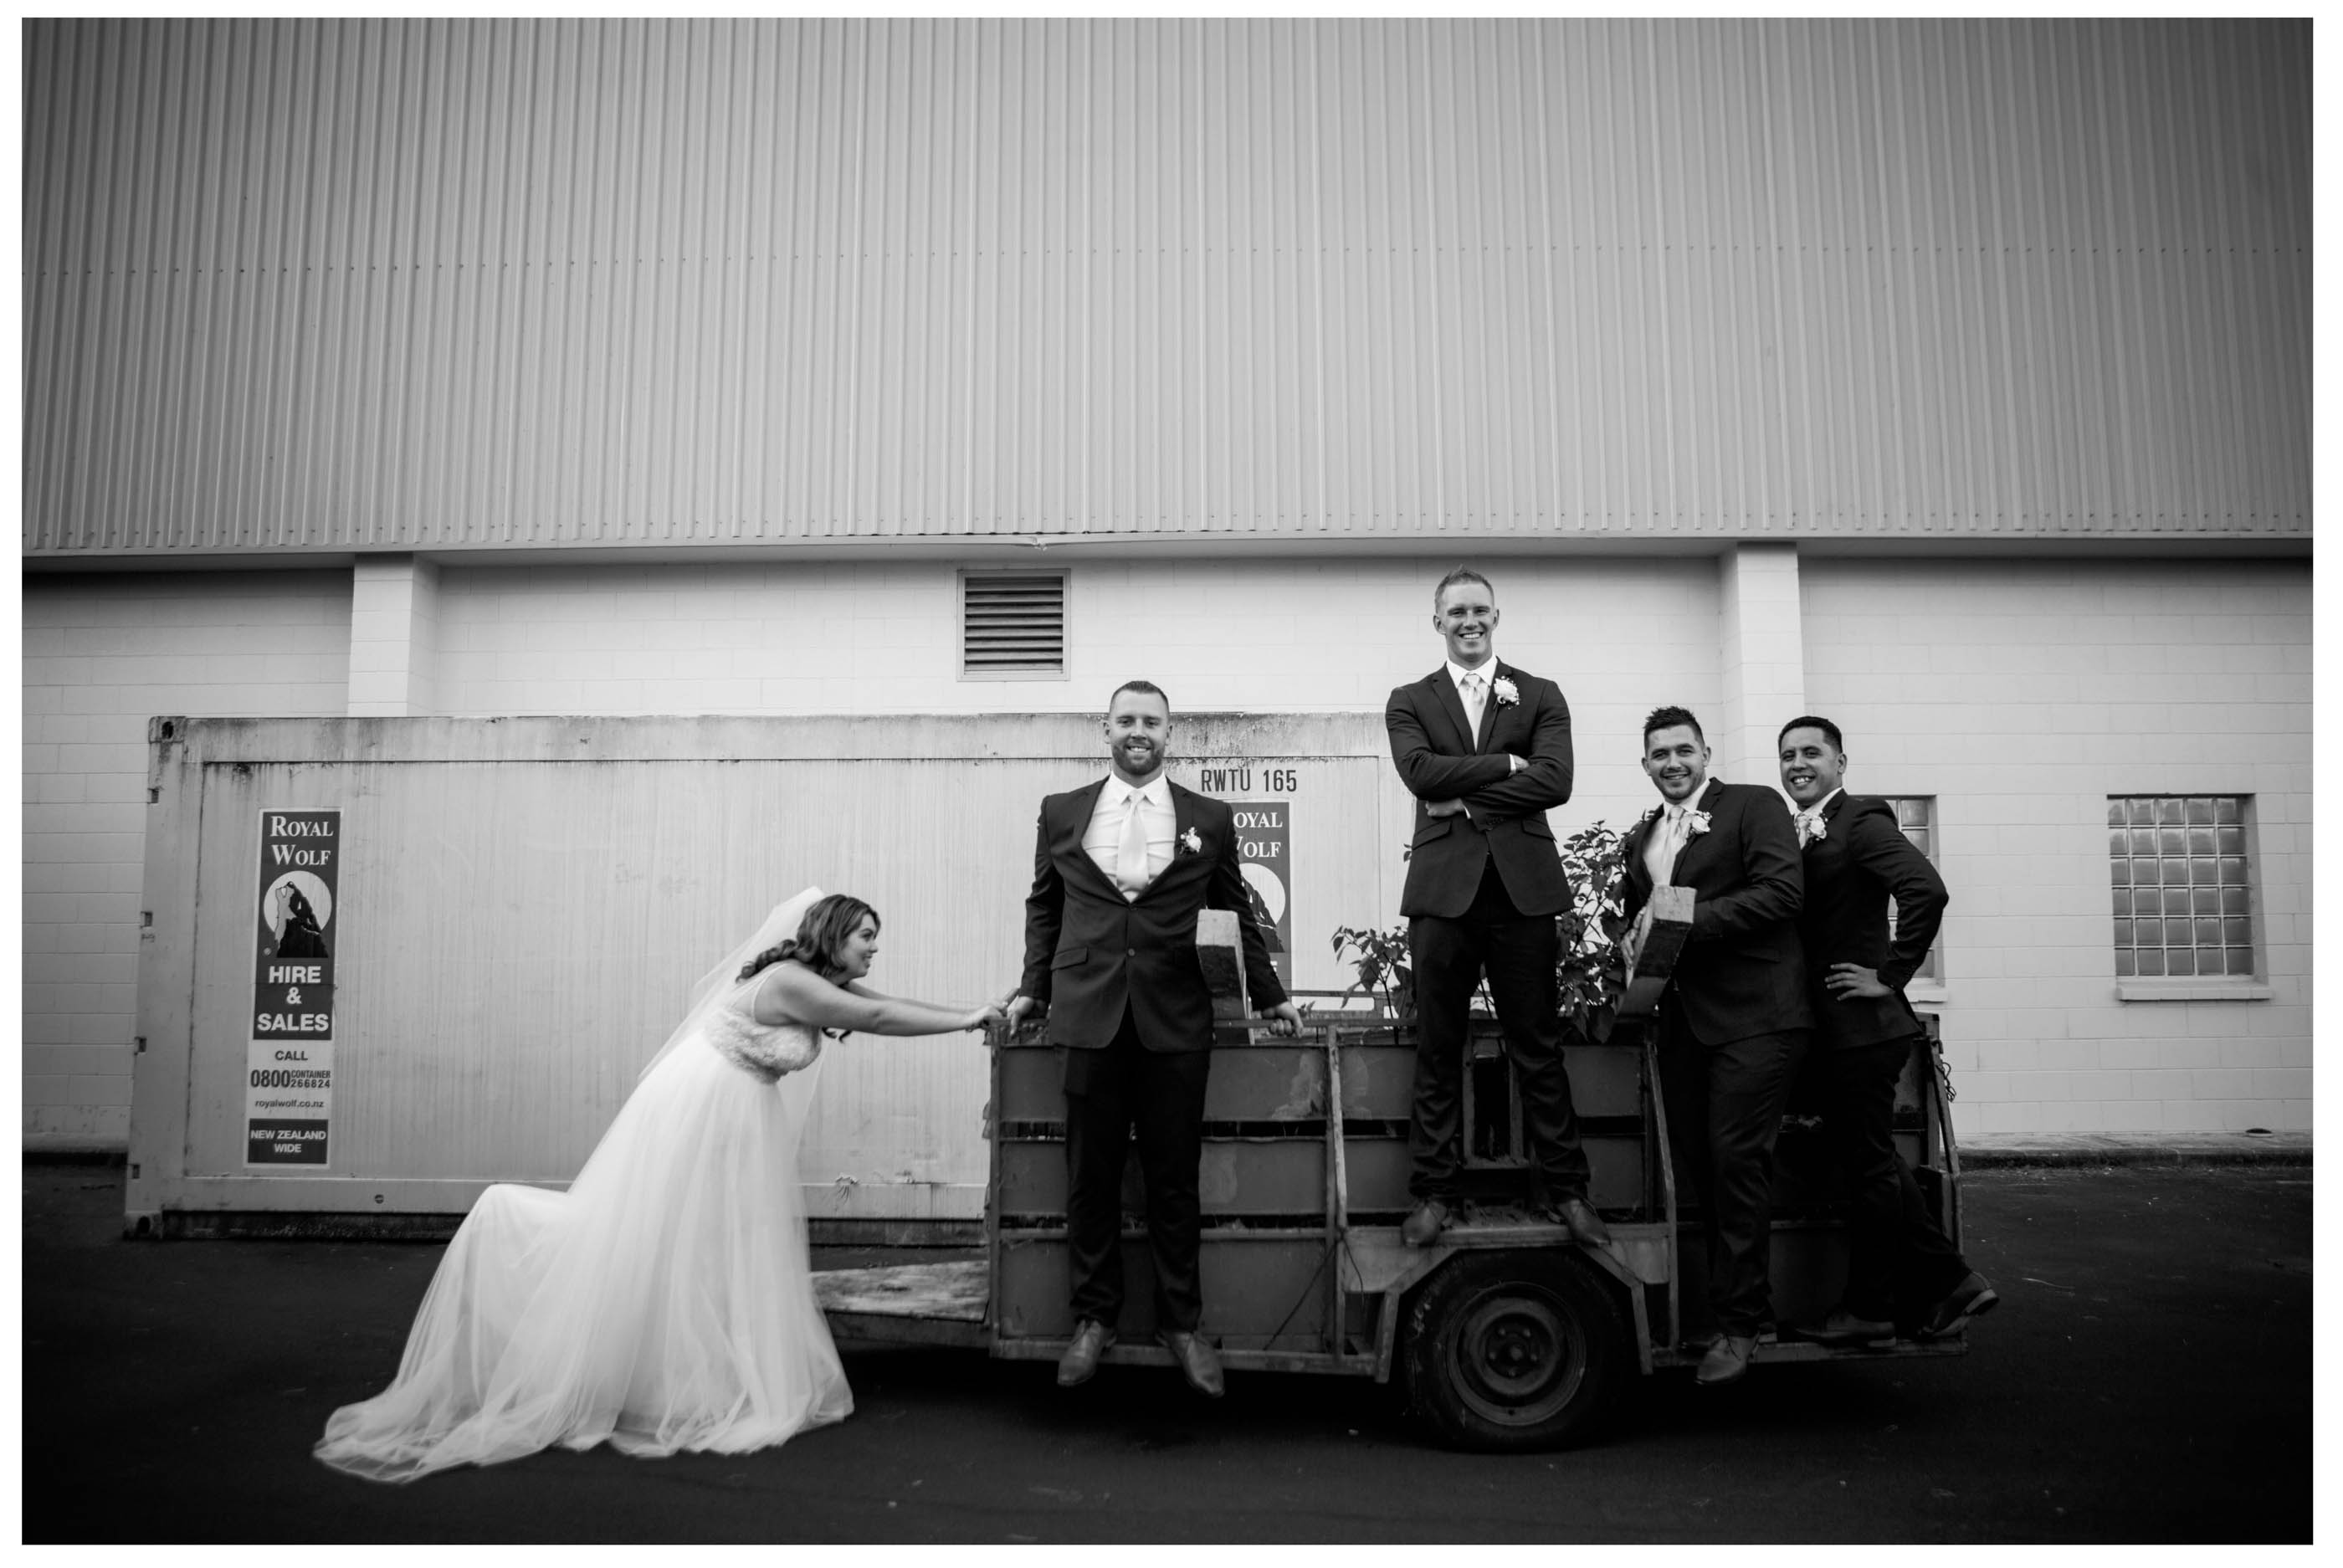 funny photo. Bride pushed trailer full with groom and groomsmen,